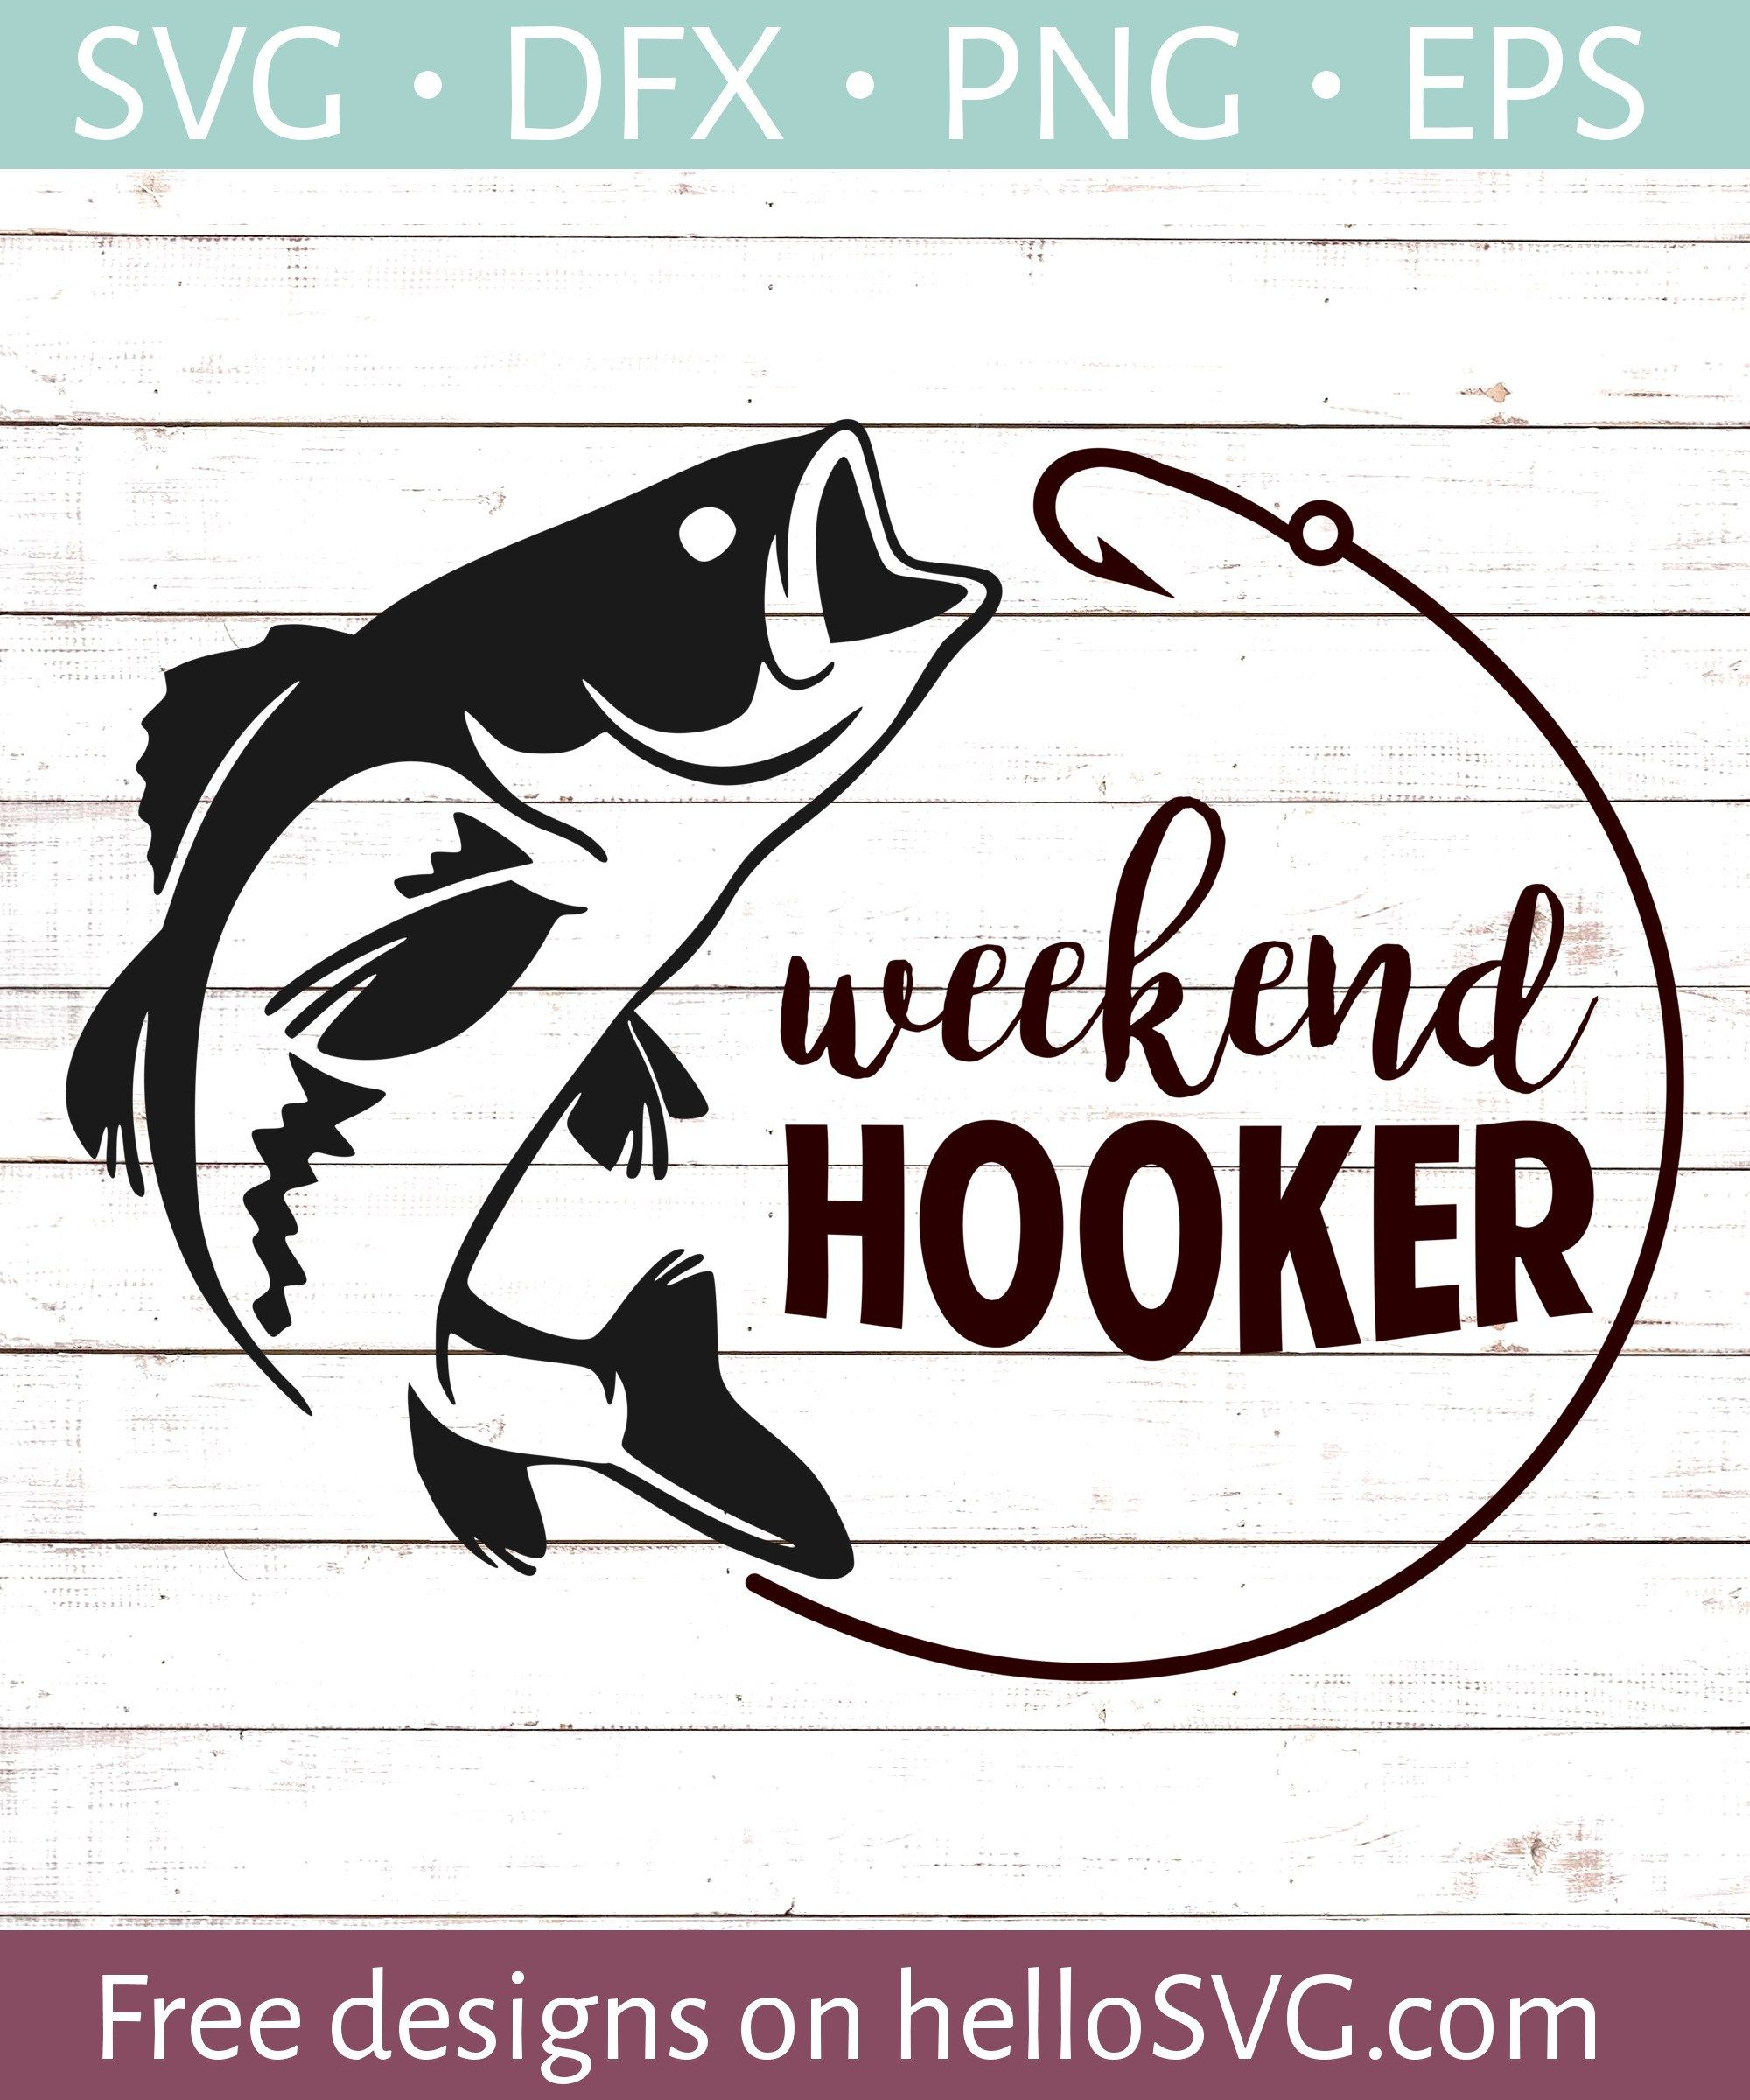 Weekend Hooker SVG - Free SVG files | HelloSVG com | free svg